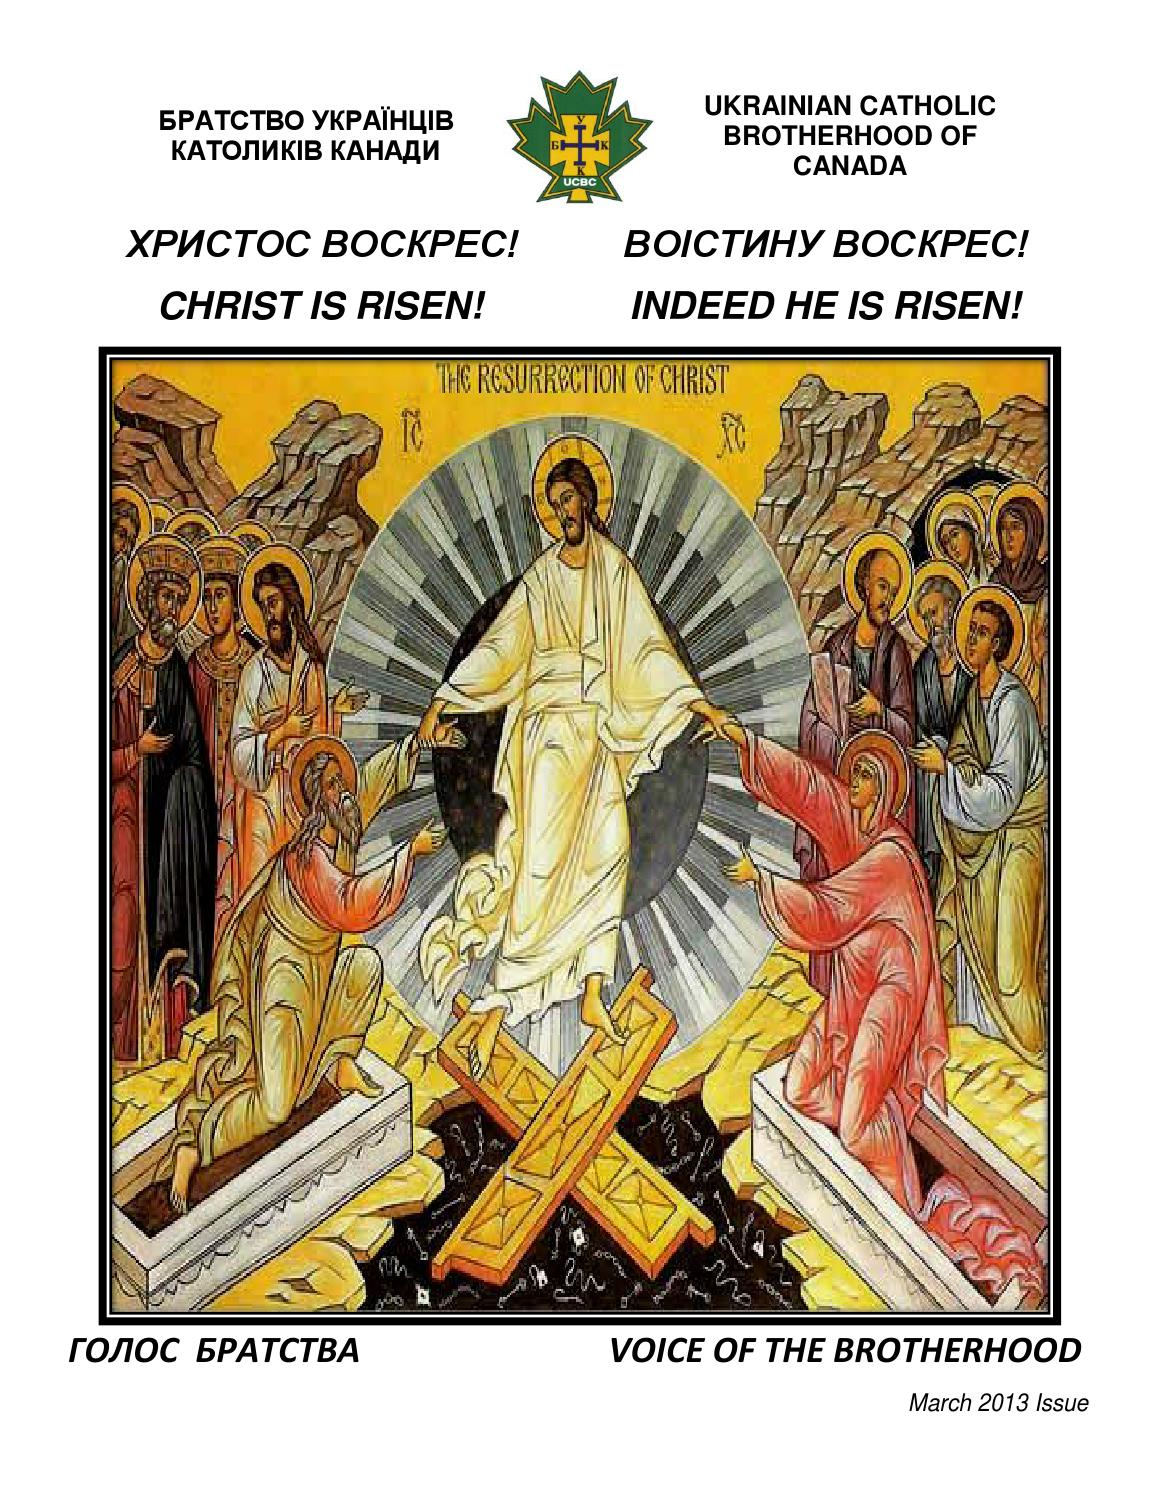 Catholic easter hymn planning guide 2013 array national ucbc holos bratstva easter 2013 by ucbc issuu rh issuu fandeluxe